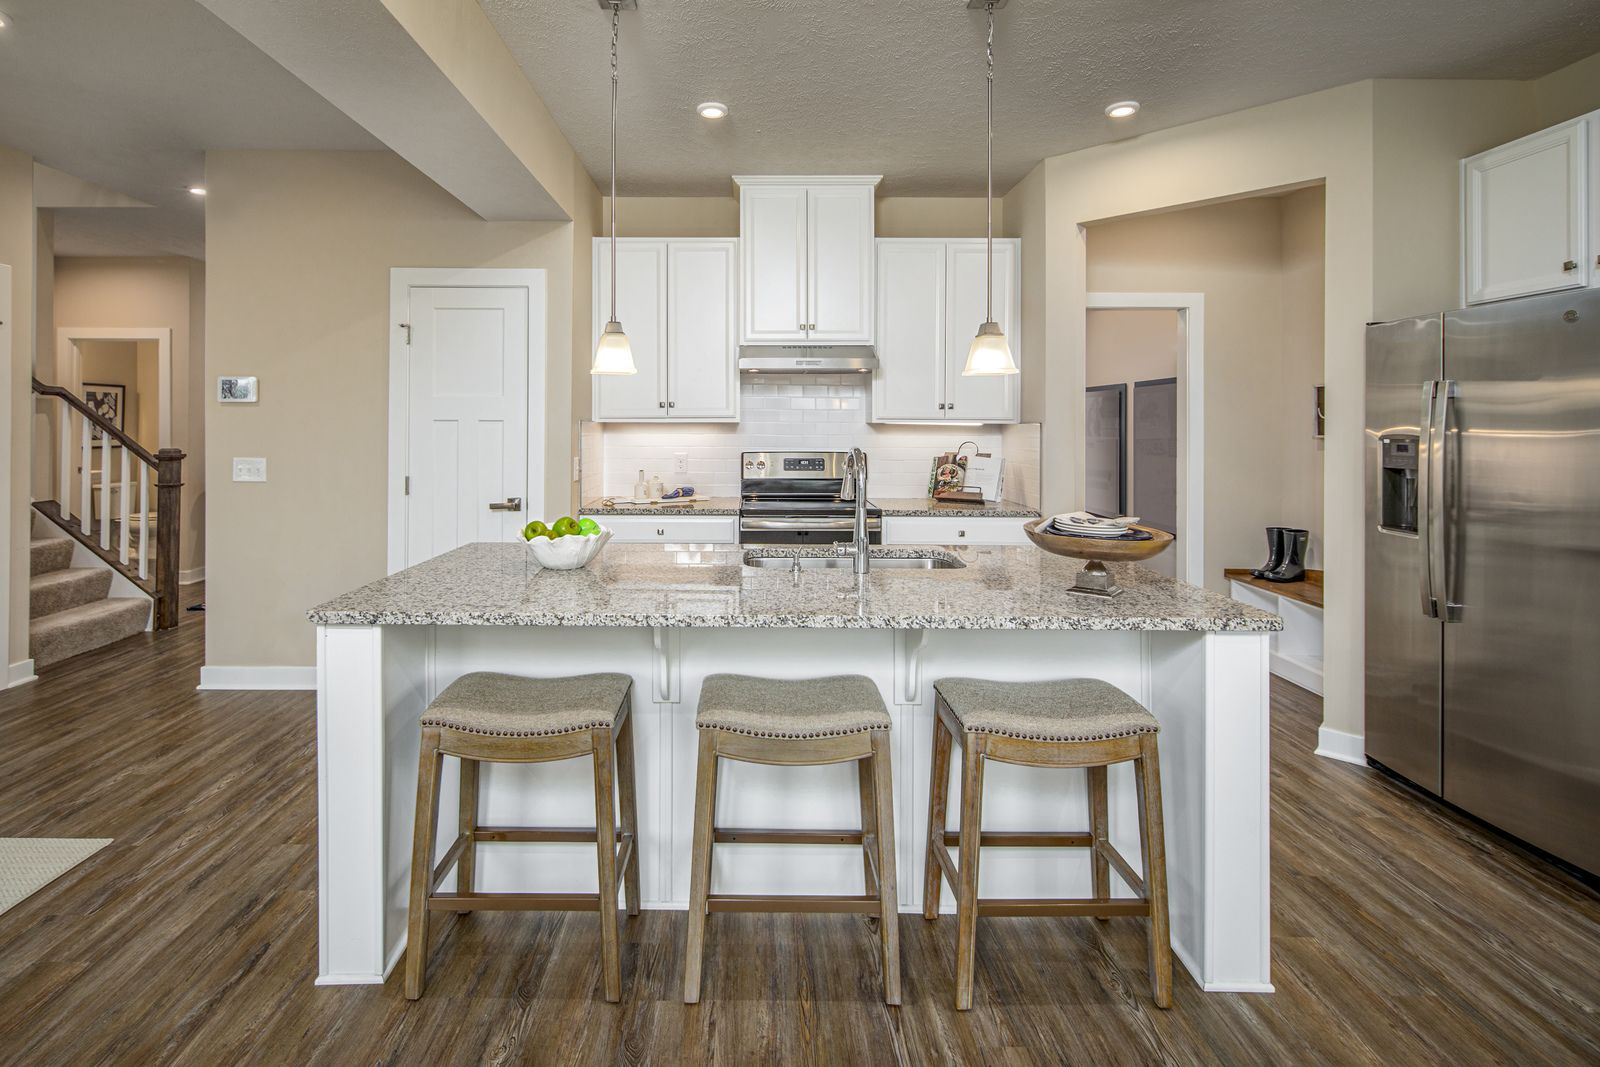 Kitchen featured in the Allegheny By Ryan Homes in Cleveland, OH